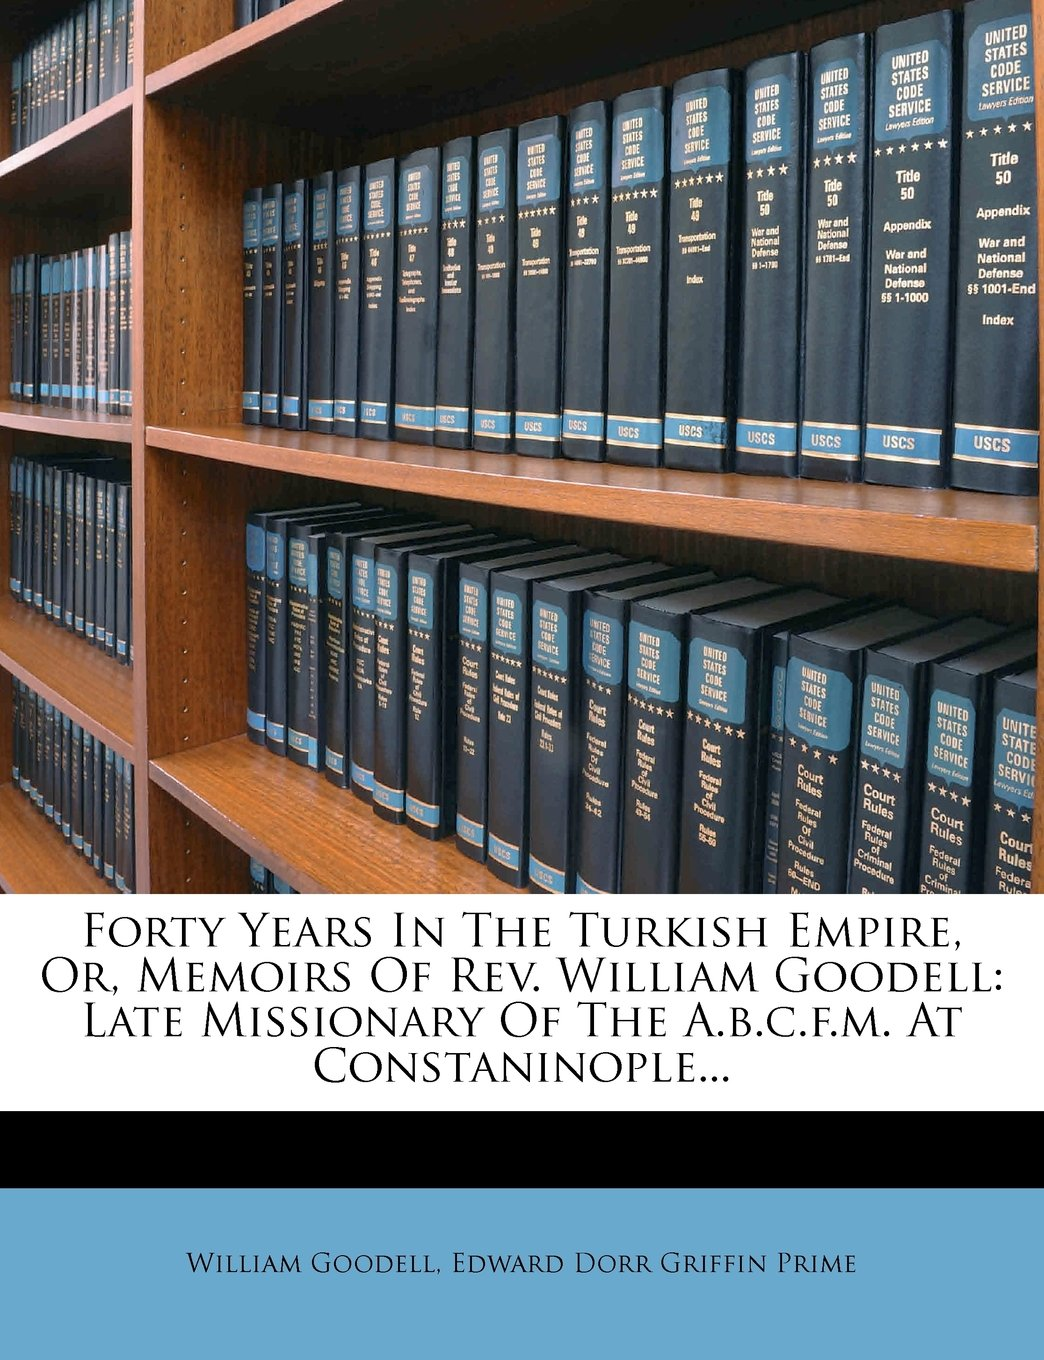 Forty Years In The Turkish Empire, Or, Memoirs Of Rev. William Goodell: Late Missionary Of The A.b.c.f.m. At Constaninople... PDF